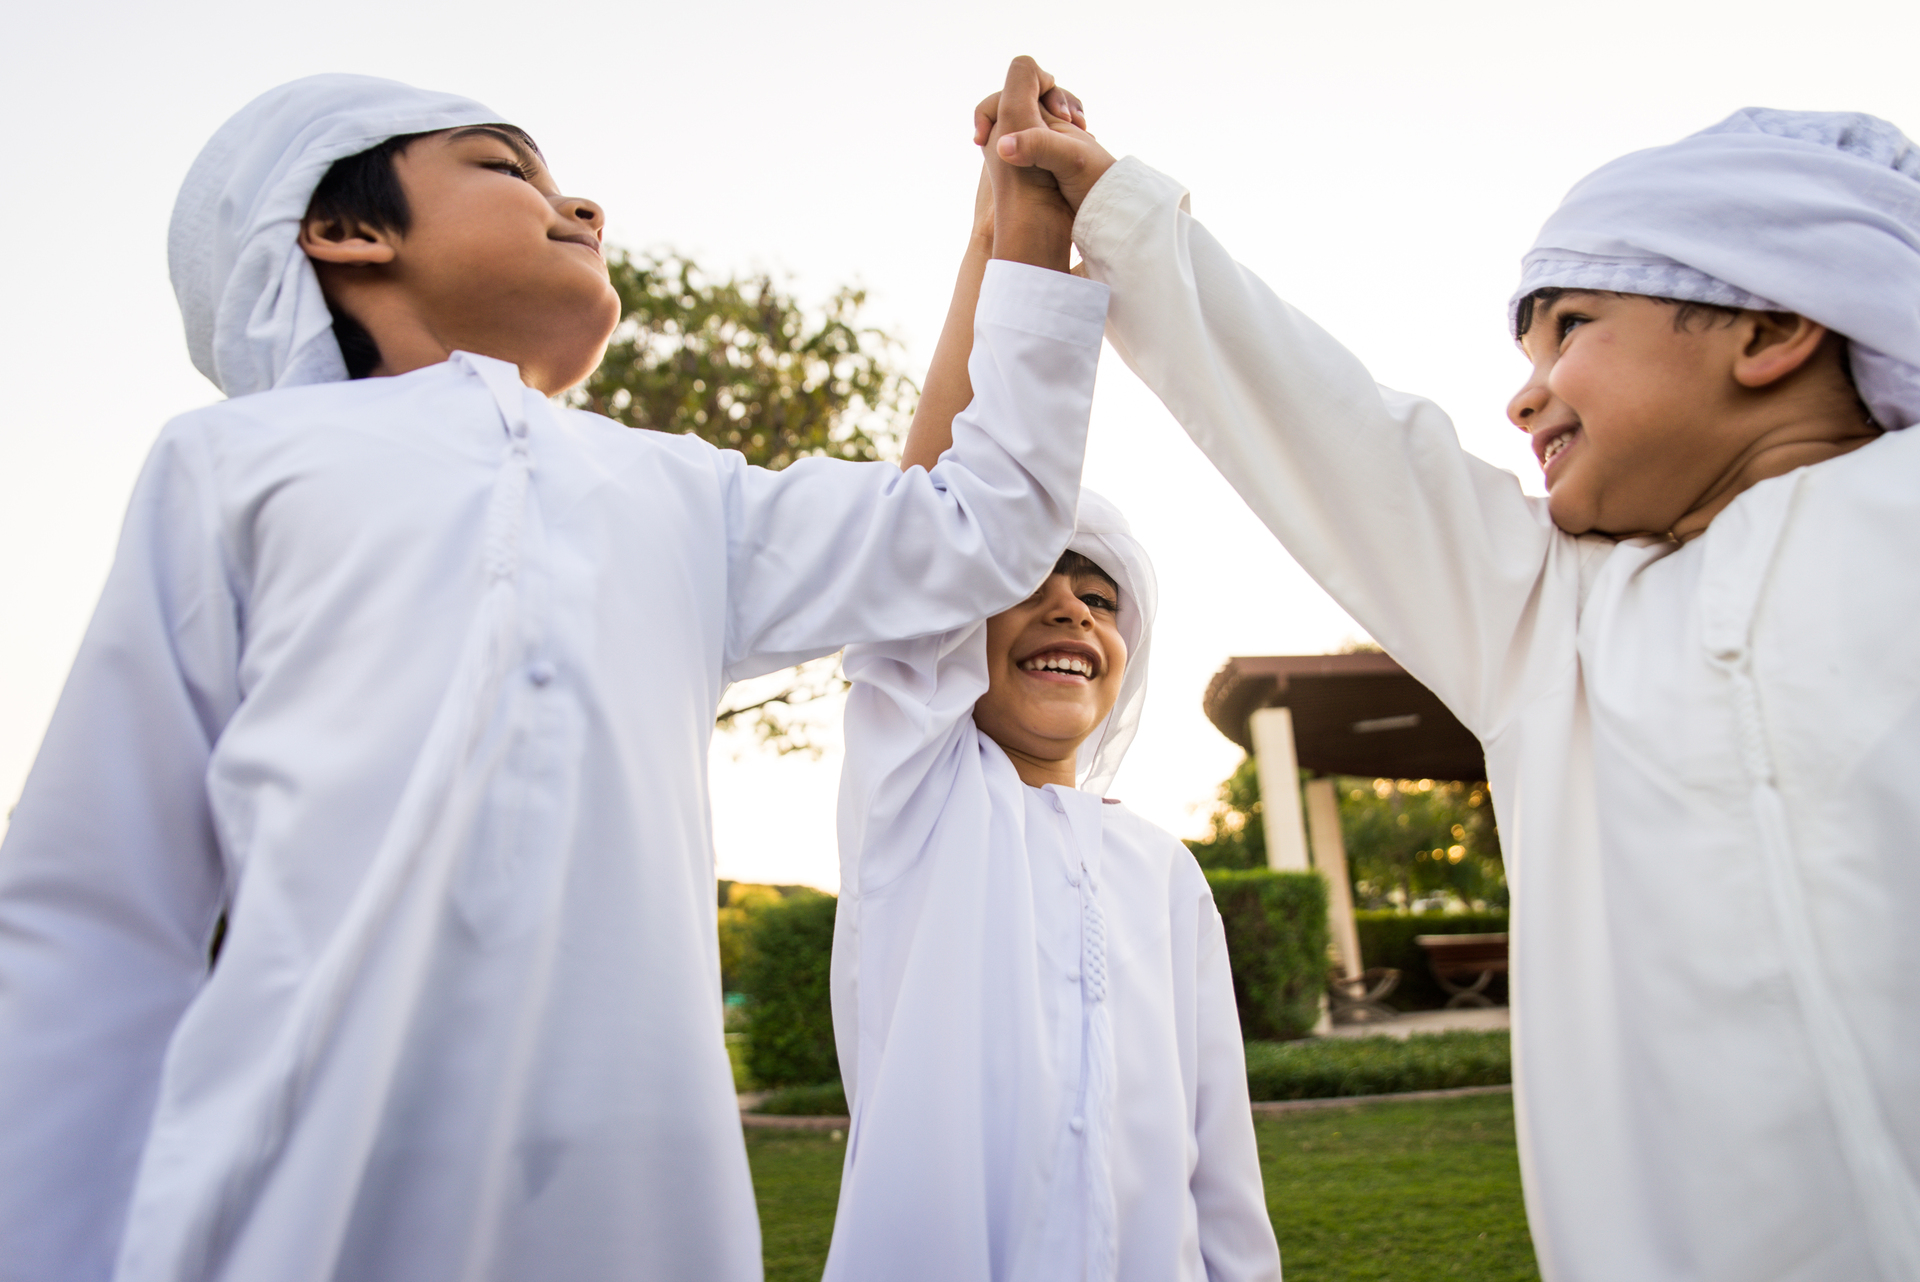 Group of middle eastern kids